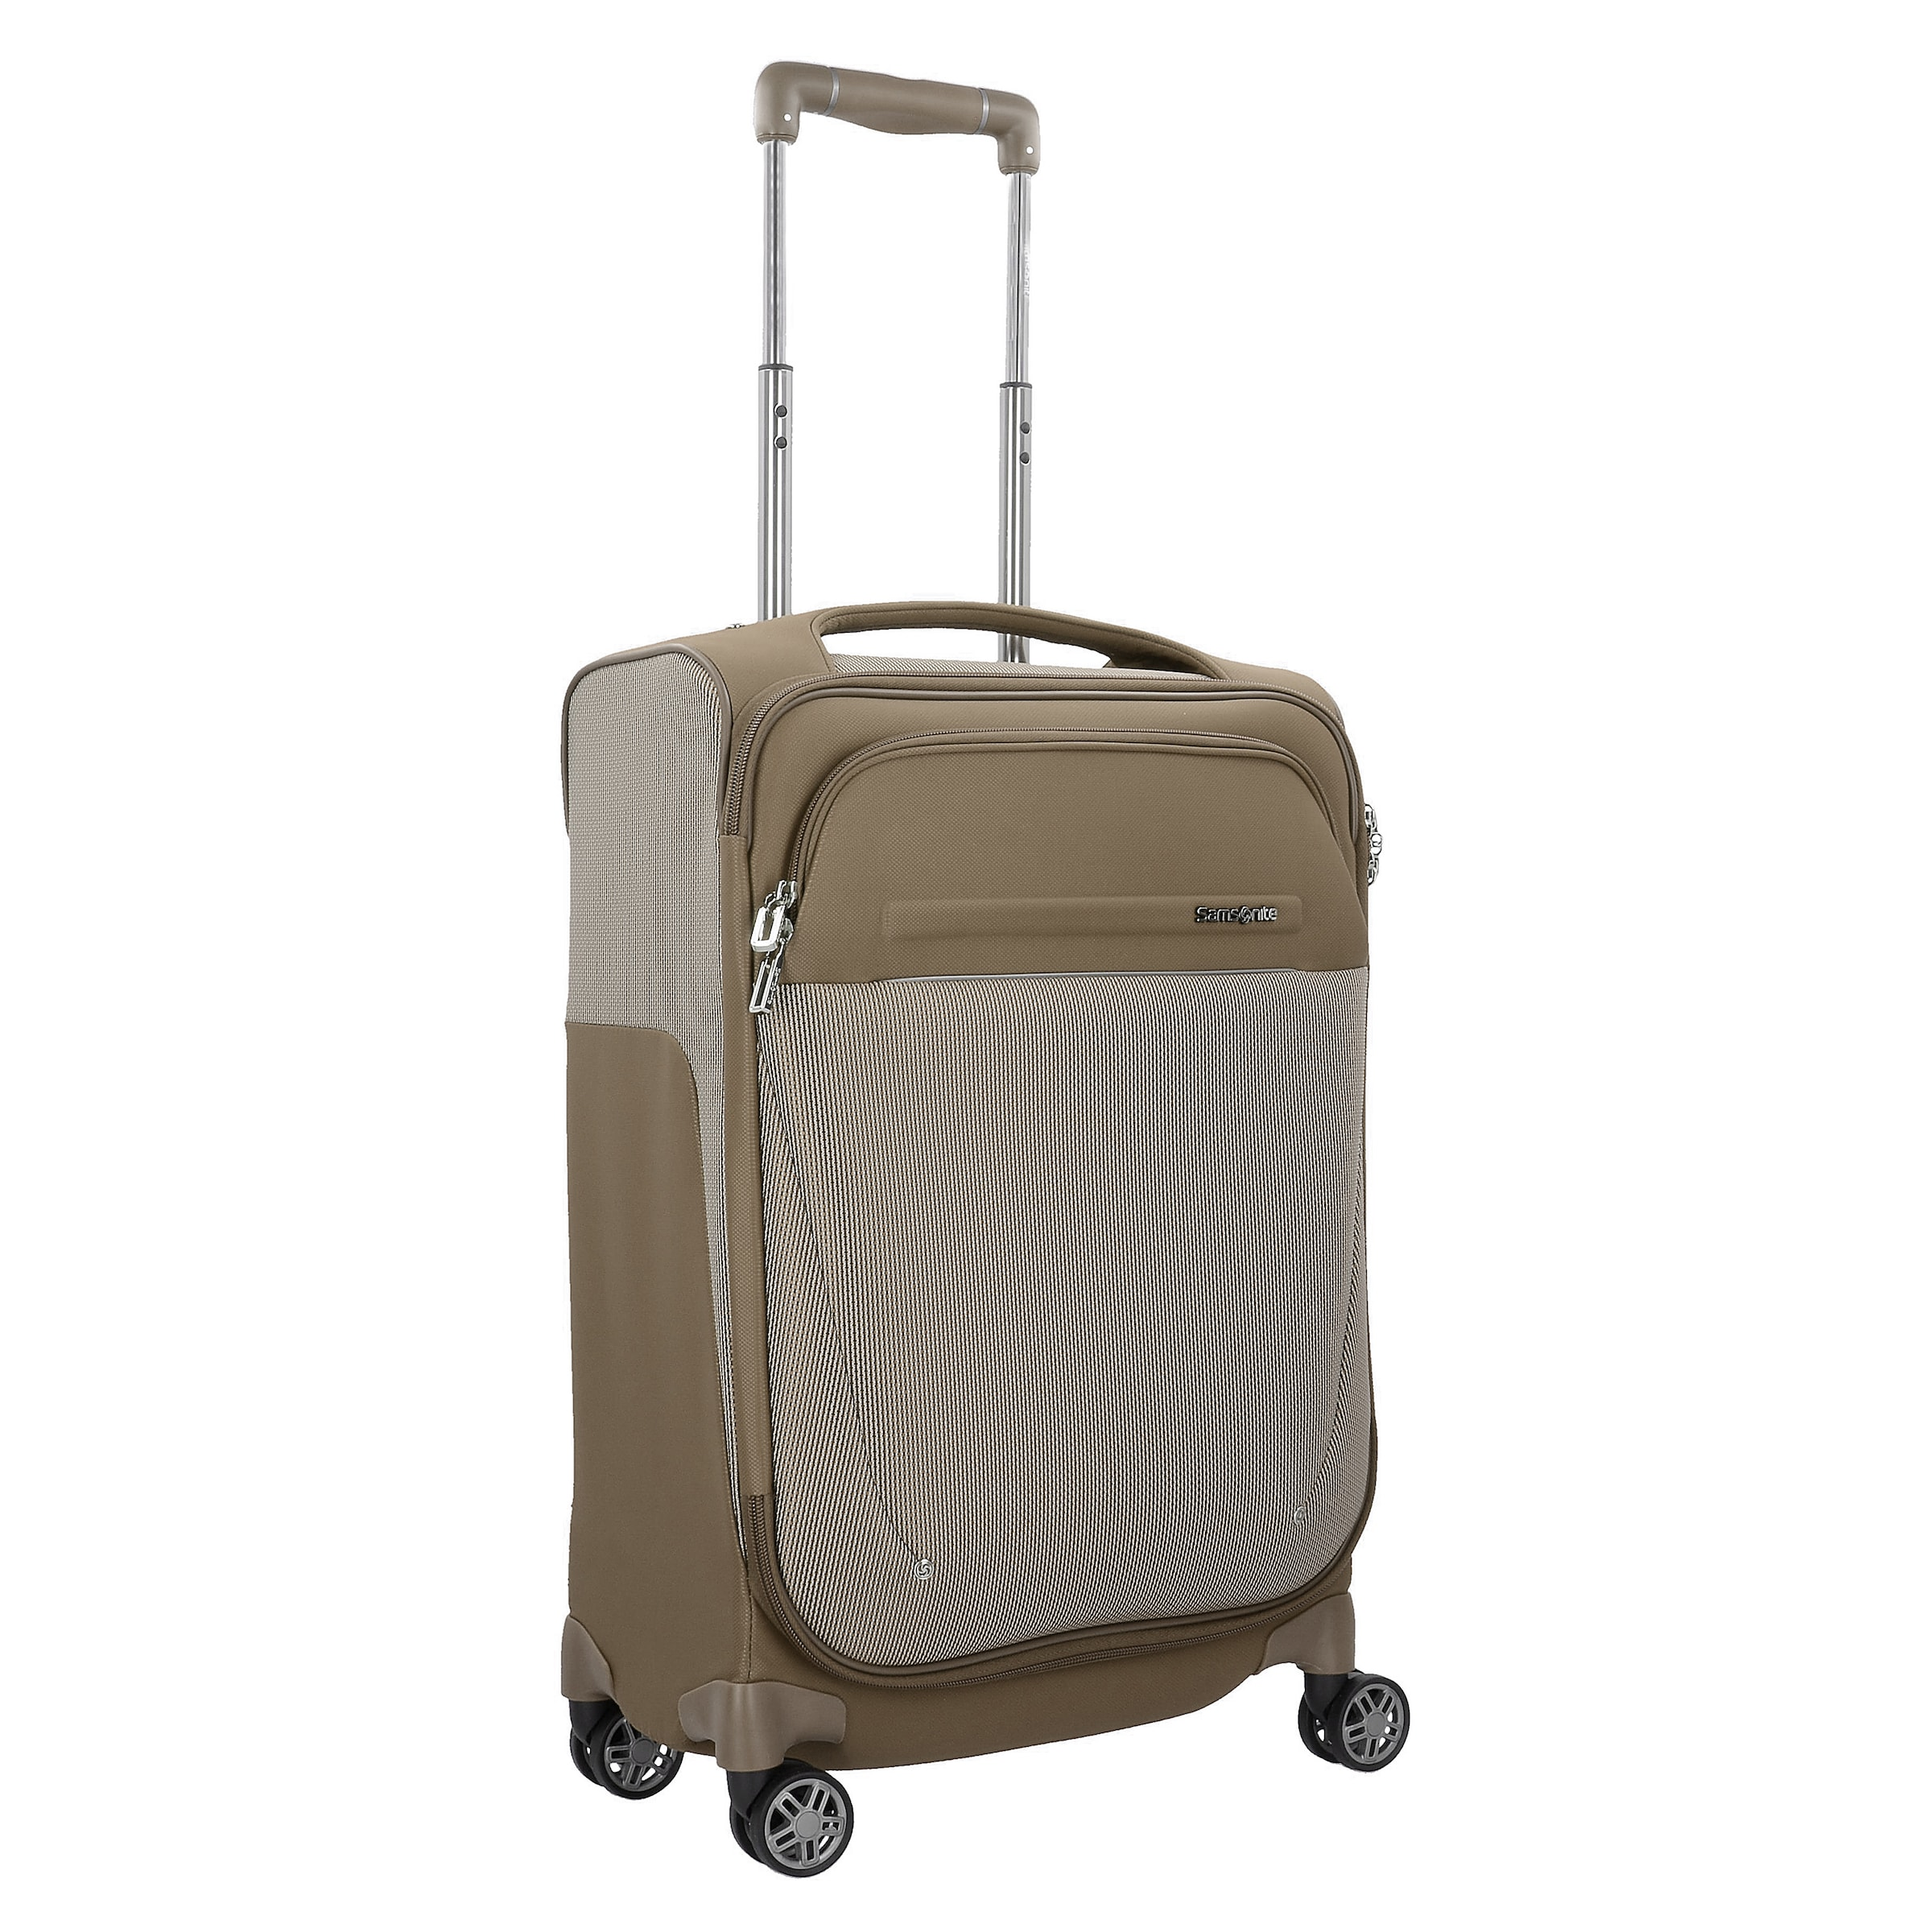 In Kabinentrolley Kabinentrolley Braun Braun Samsonite Samsonite In Samsonite thQdrCxs